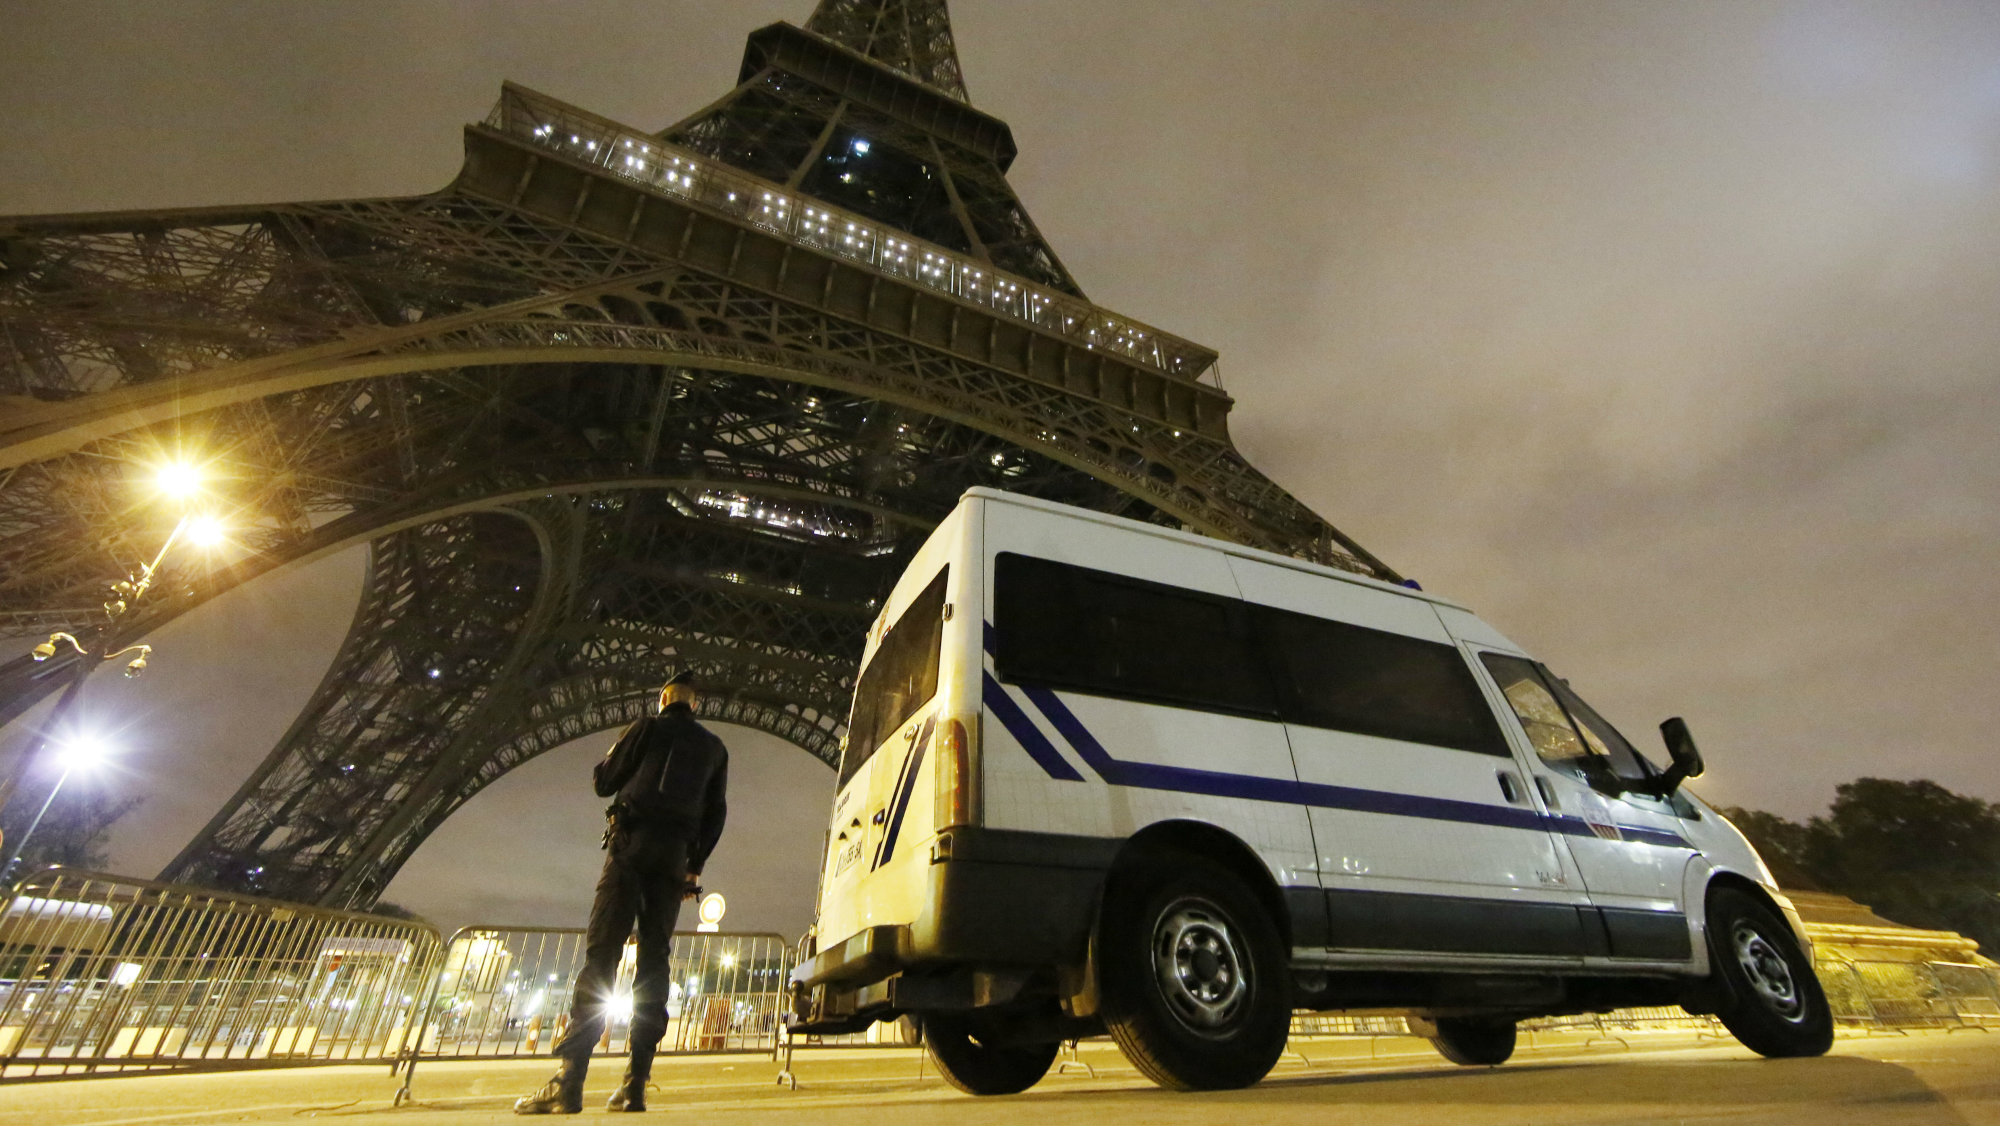 A police officer stands guard at the foot of the Eiffel Tower in Paris.